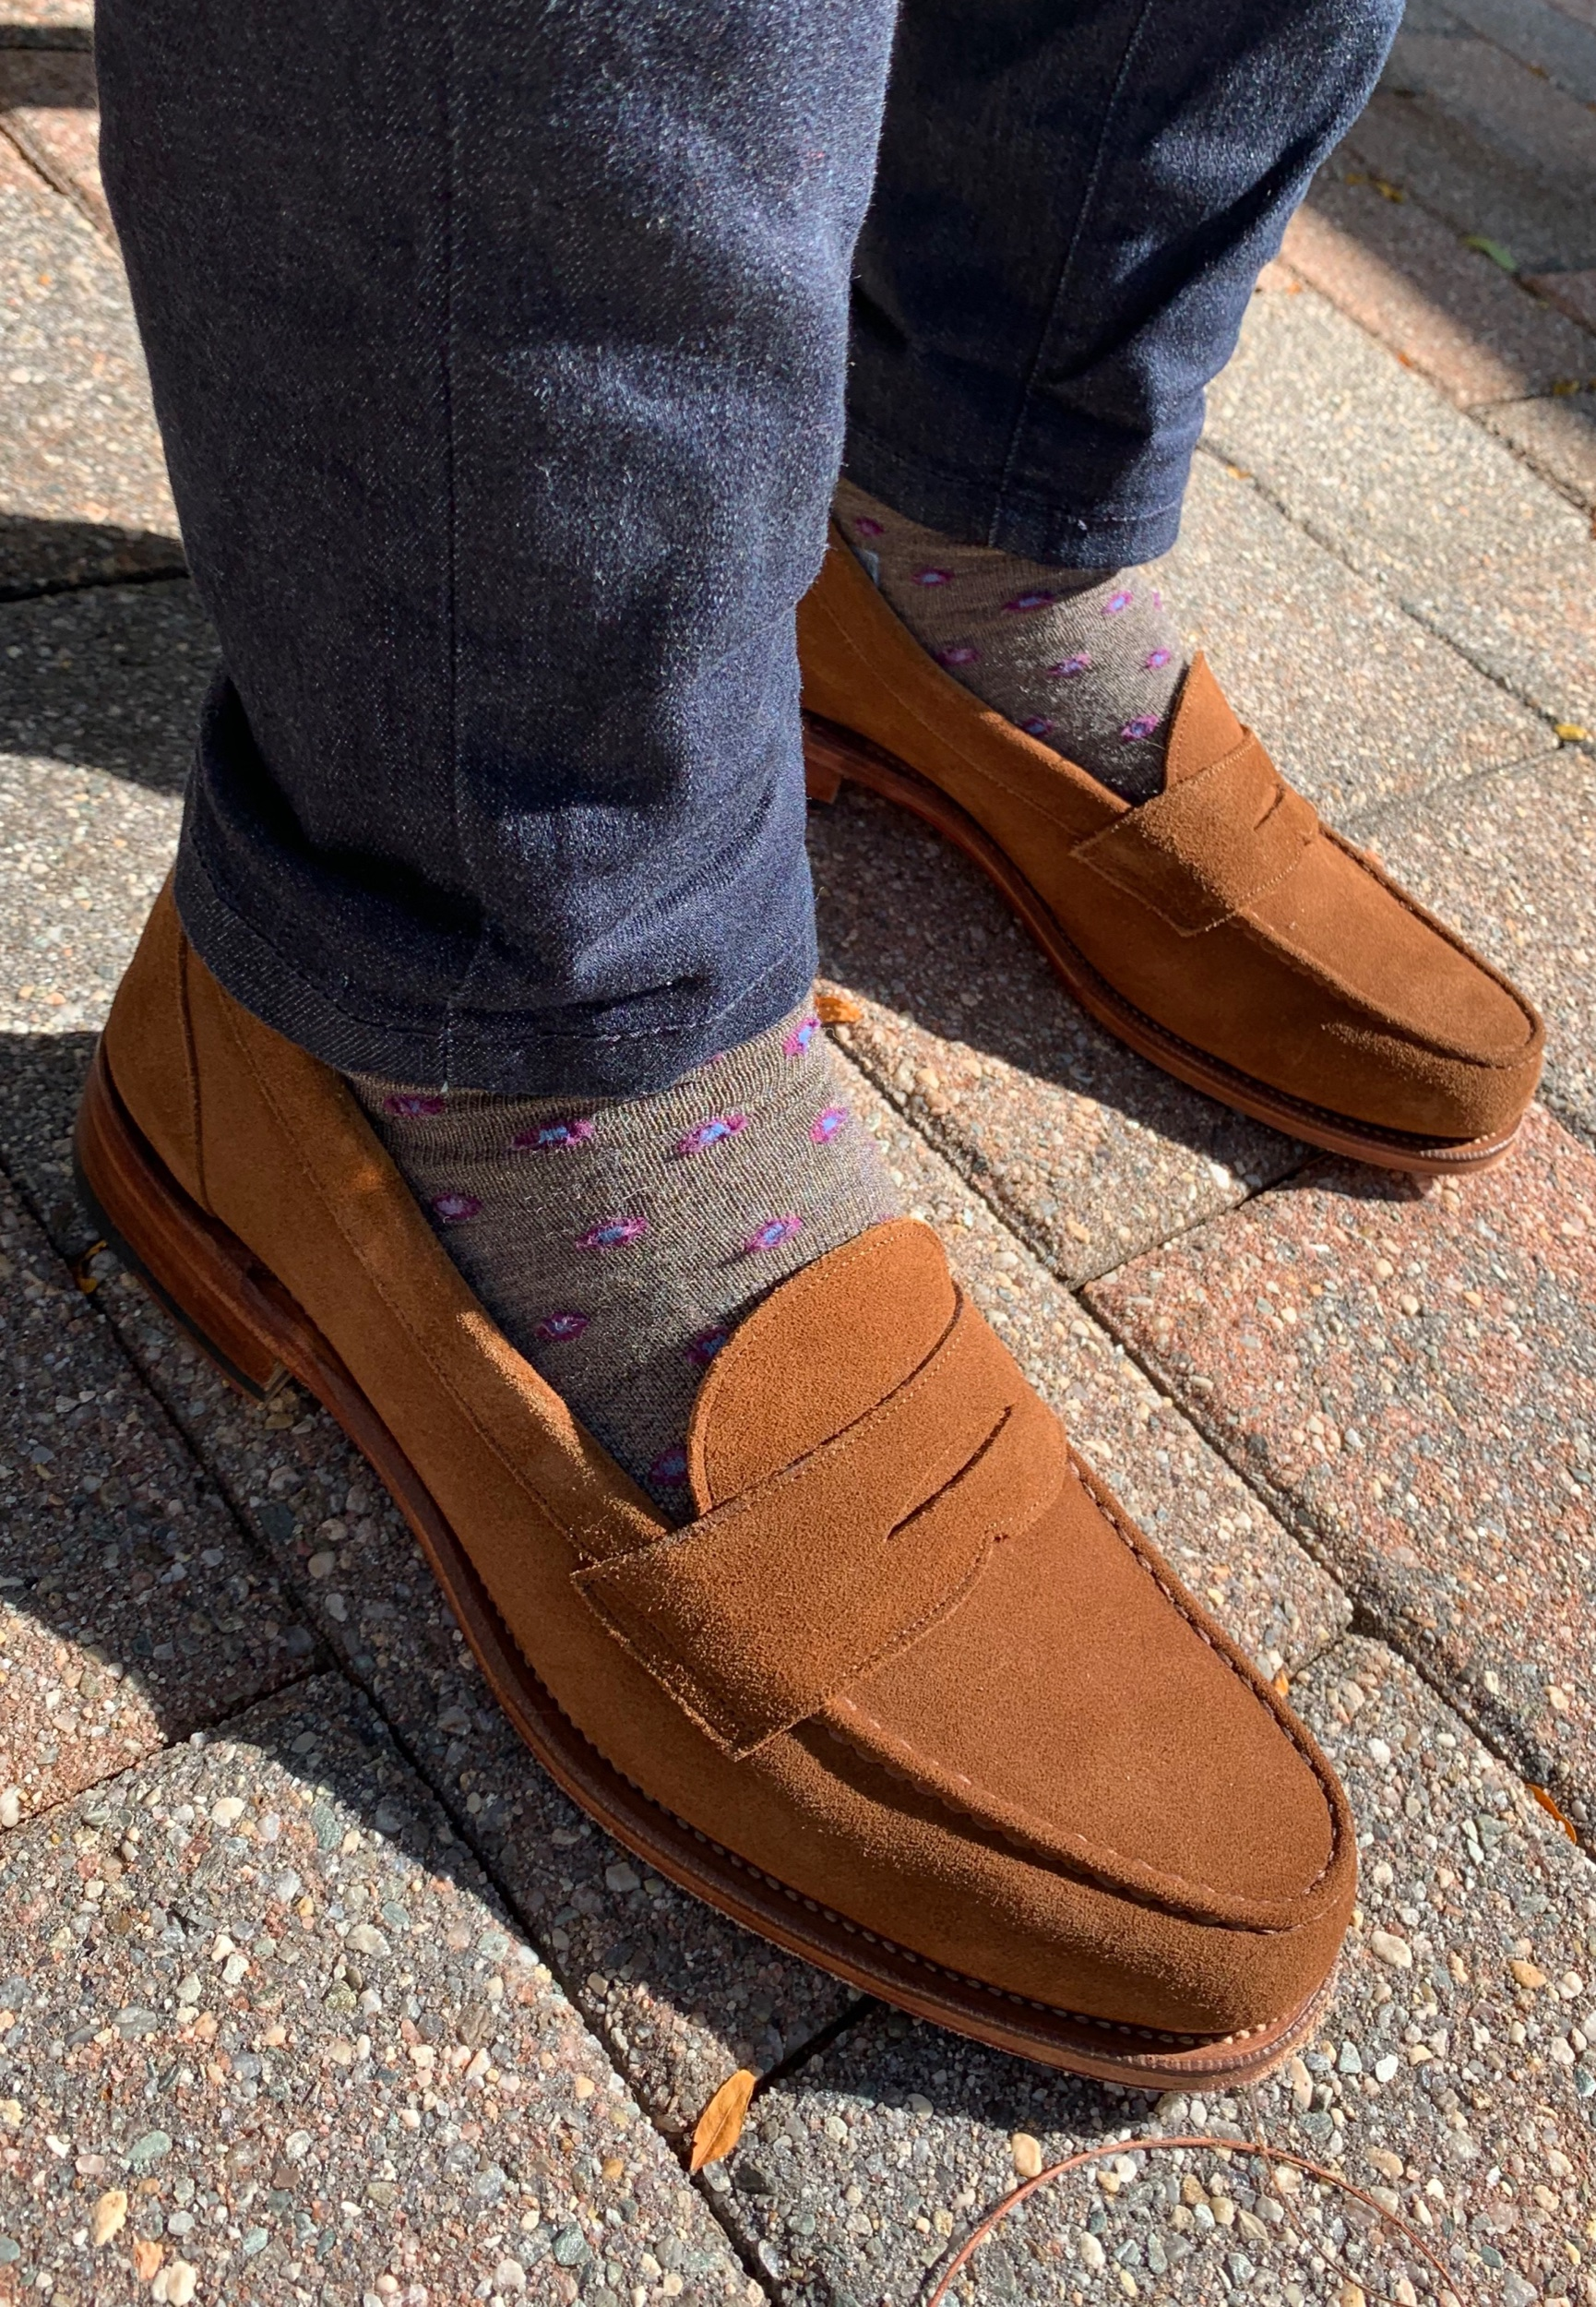 My favorite way to wear these penny loafers: with slim Darn Tough Lifestyle Socks, and skinny dark wash jeans